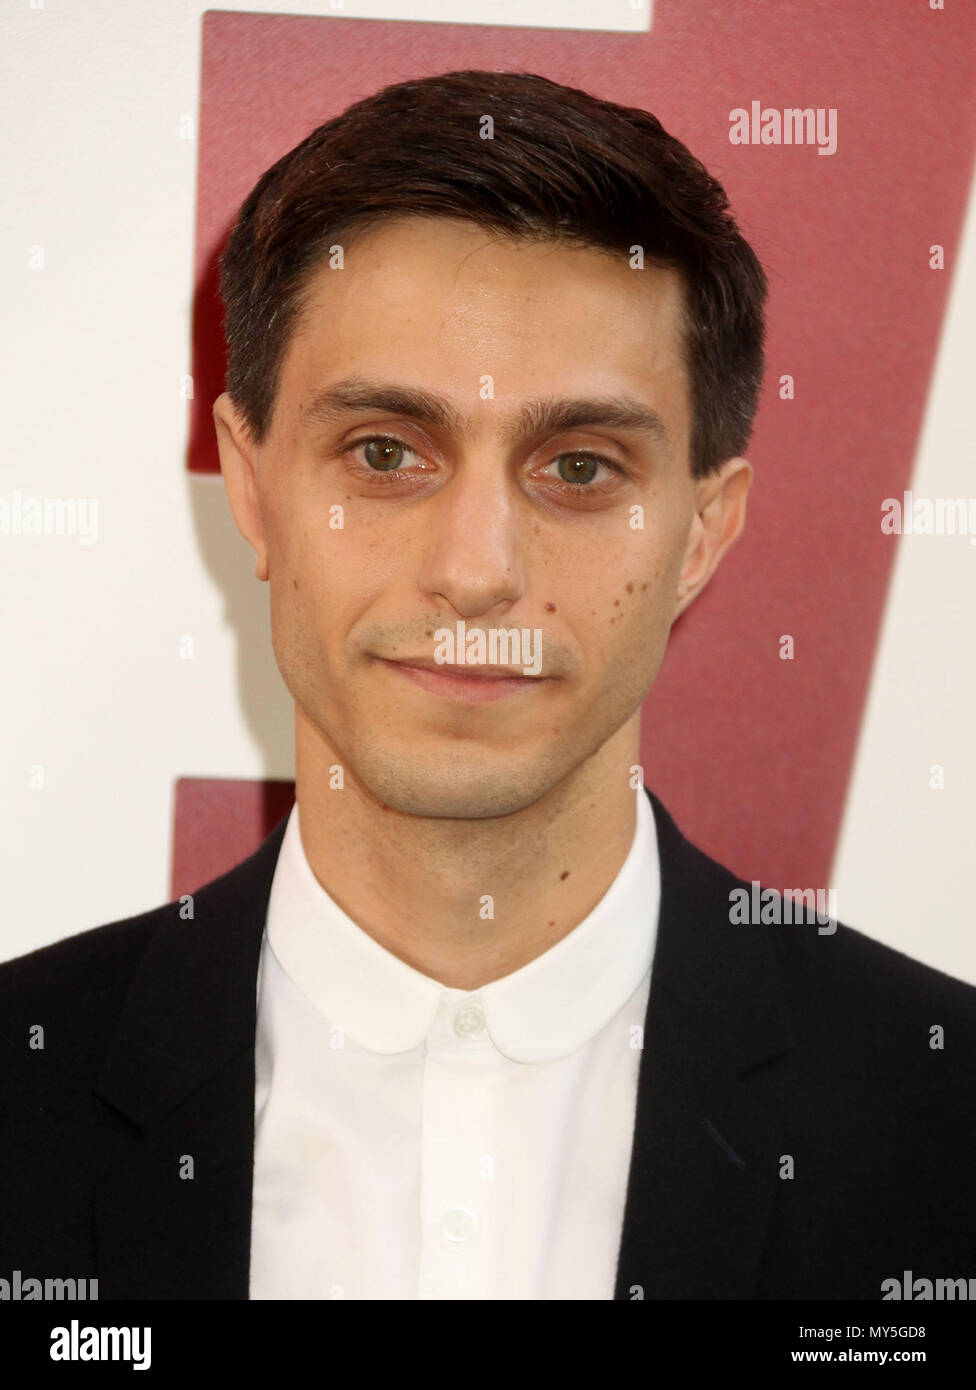 New York City, New York, USA. 5th June, 2018. Actor GIDEON GLICK attends the 'Ocean's 8' world premiere held at Alice Tully Hall at Lincoln Center. Credit: Nancy Kaszerman/ZUMA Wire/Alamy Live News - Stock Image